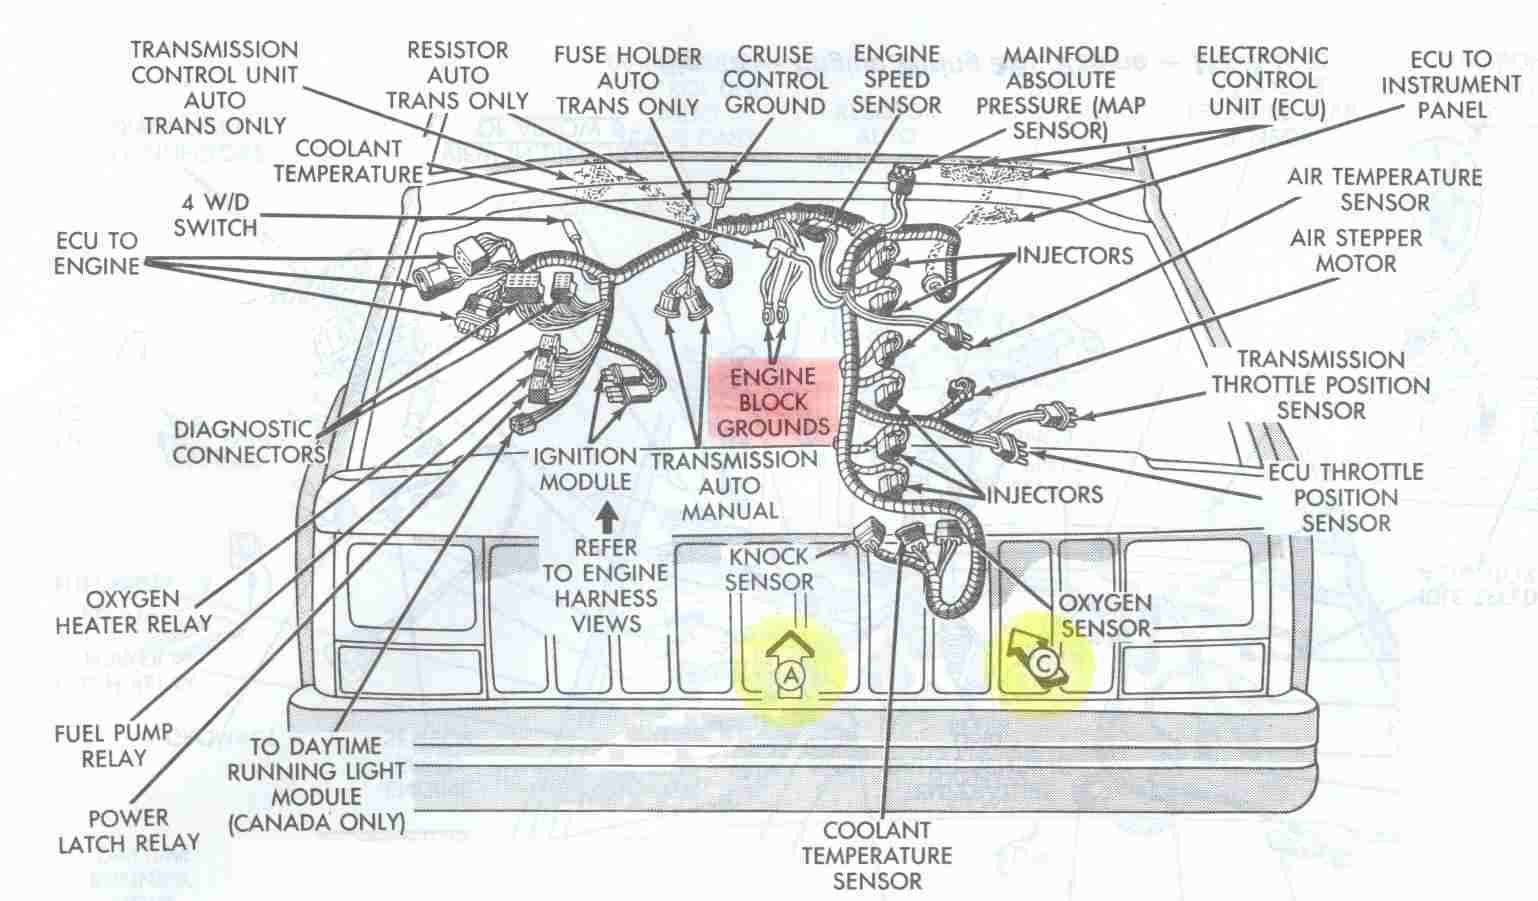 hight resolution of jeep 4 0 wiring harness wiring diagram third level rh 17 9 15 jacobwinterstein com 2004 jeep wrangler engine compartment diagram 1989 jeep wrangler engine